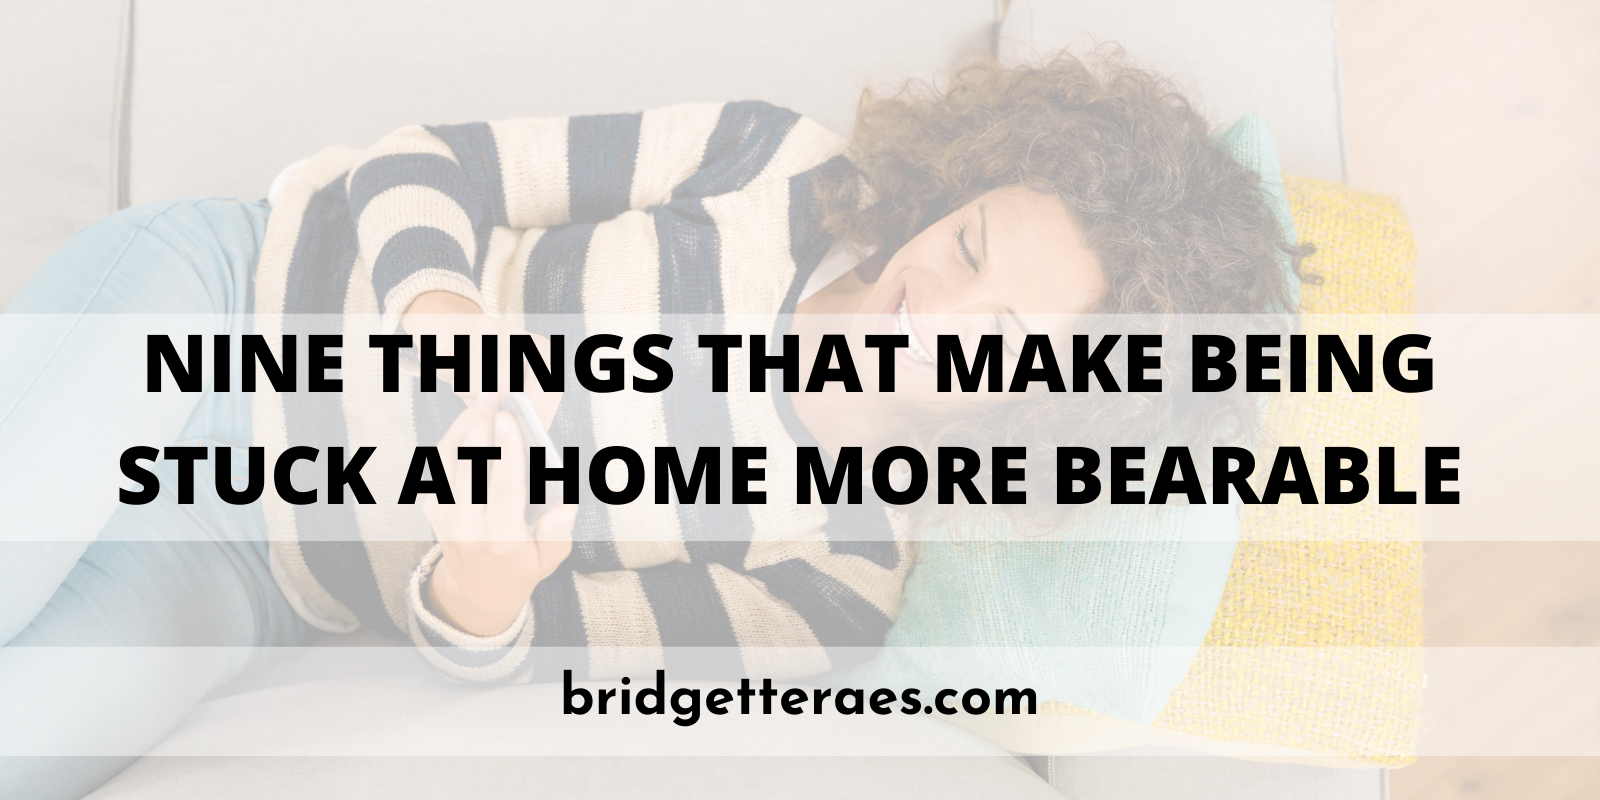 Nine Things That Make Being Stuck at Home More Bearable